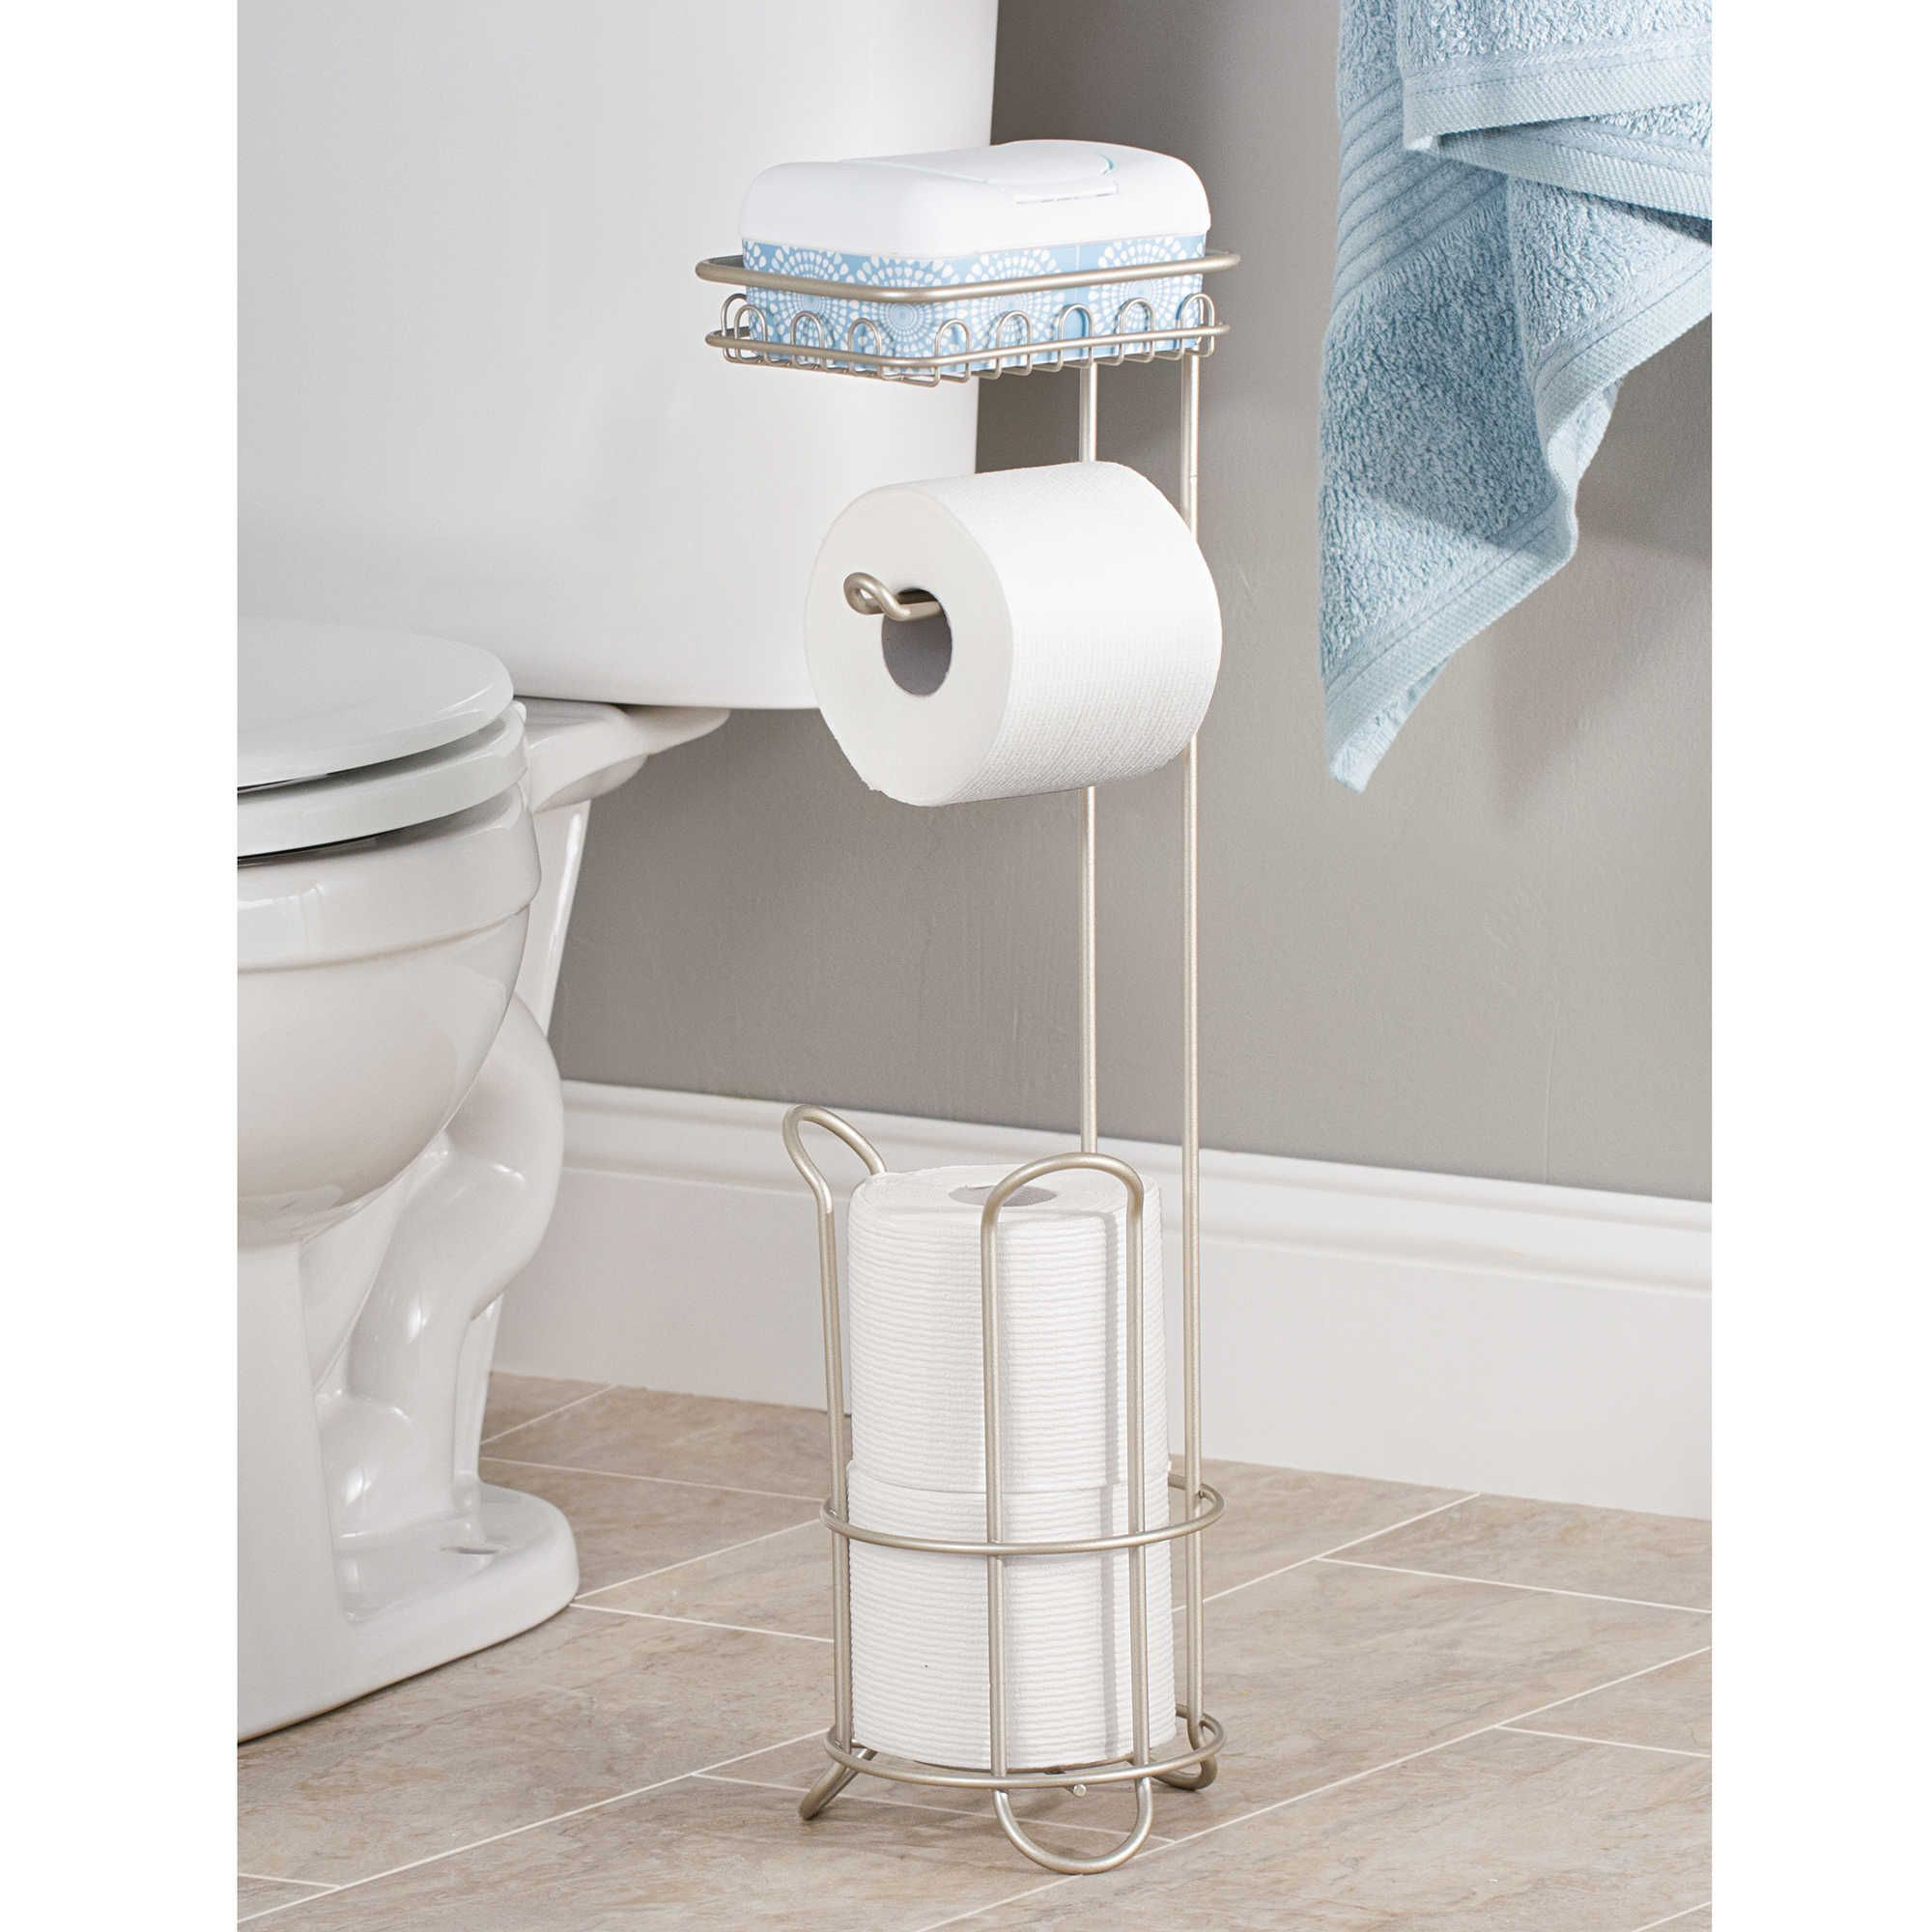 Home Dsgn Com Nbsphome Dsgn Resources And Information Toilet Paper Stand Toilet Paper Toilet Roll Holder